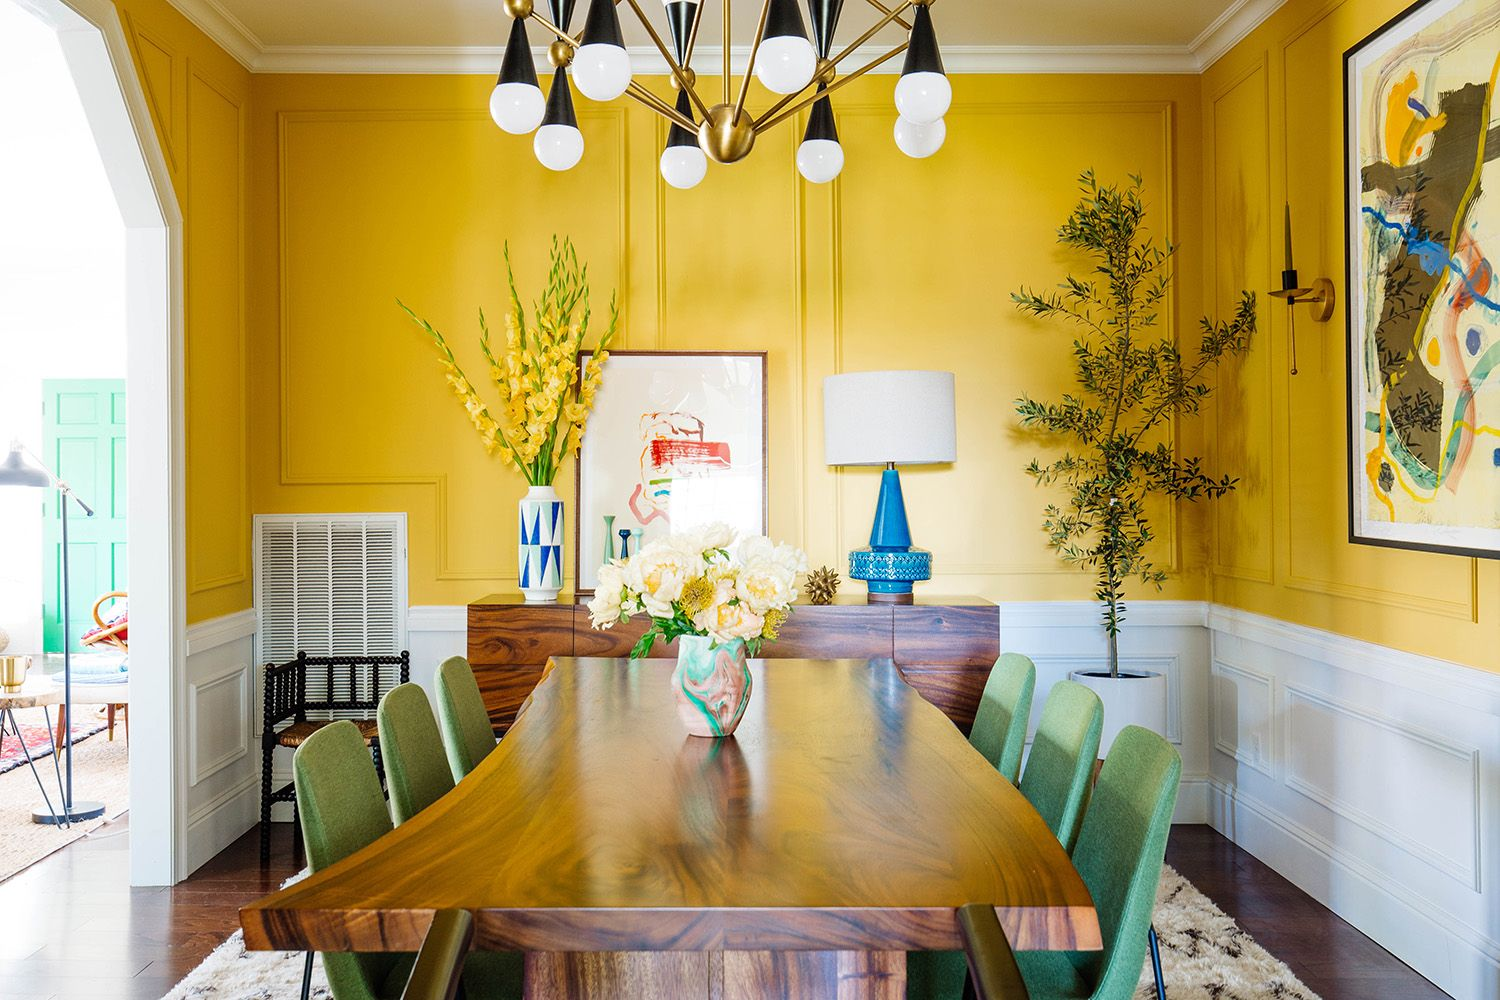 10 Gorgeous Yellow Rooms You Never Expected To Fall In Love With